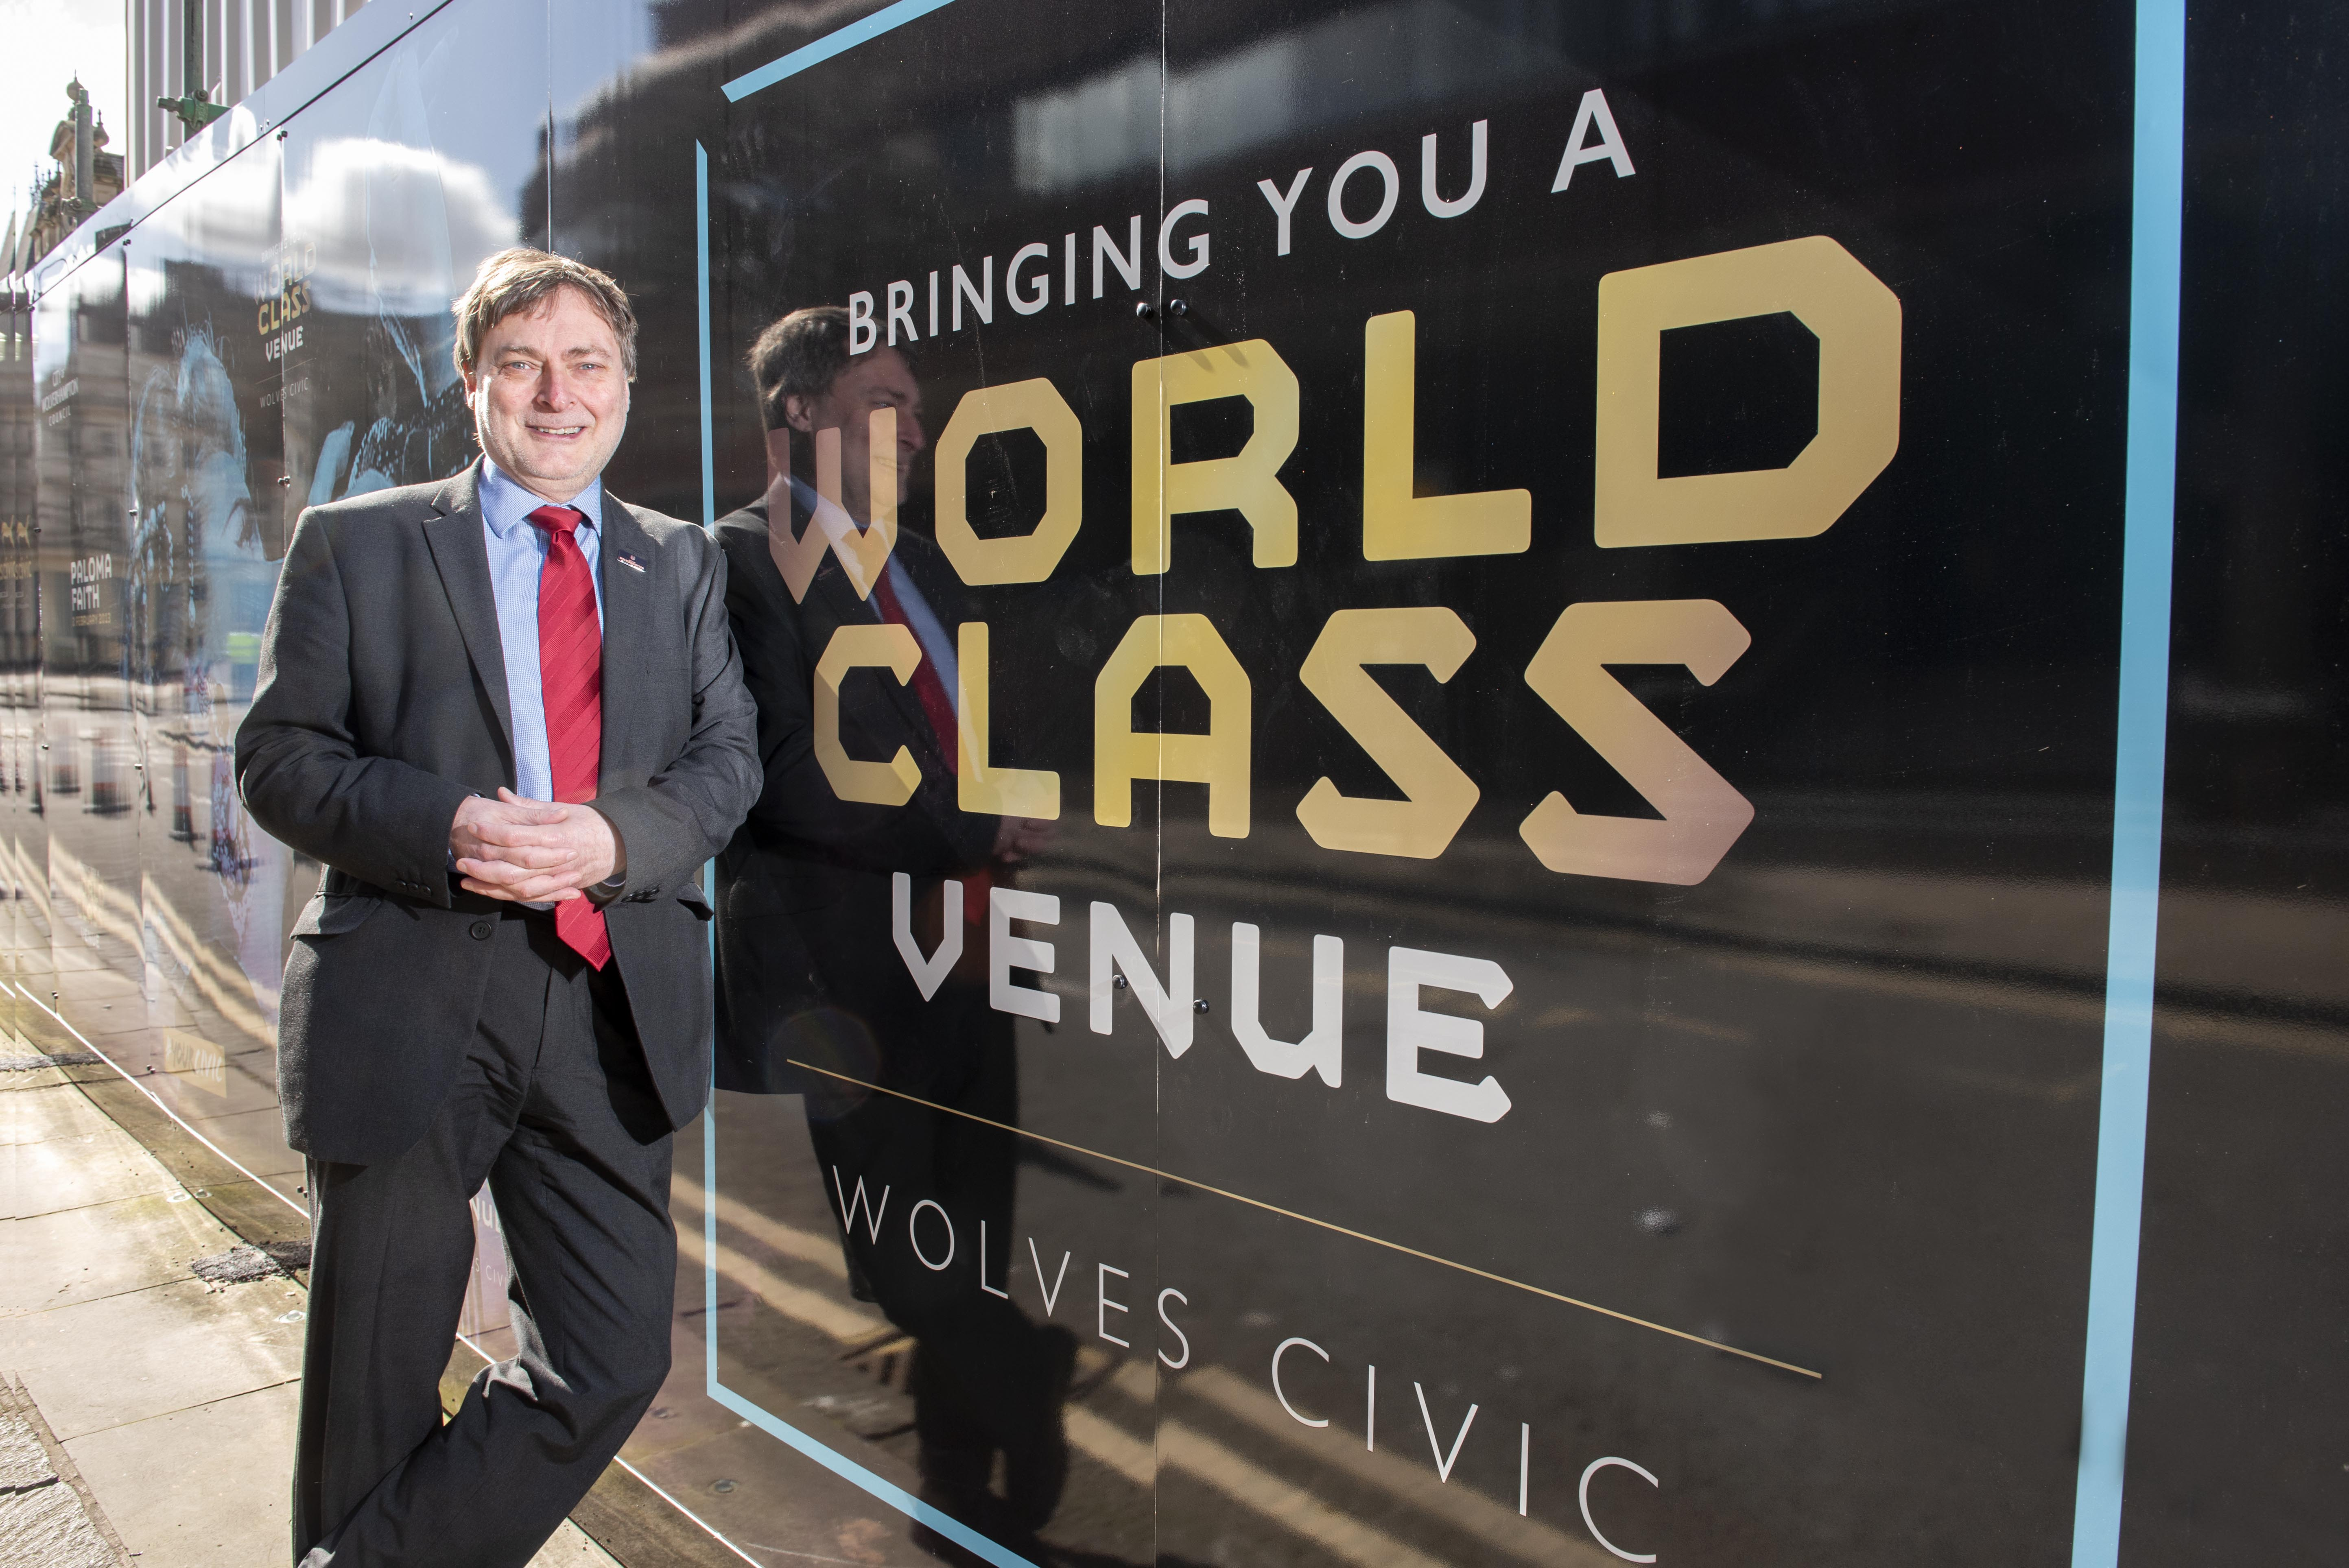 Wolves Civic works approaching major milestone